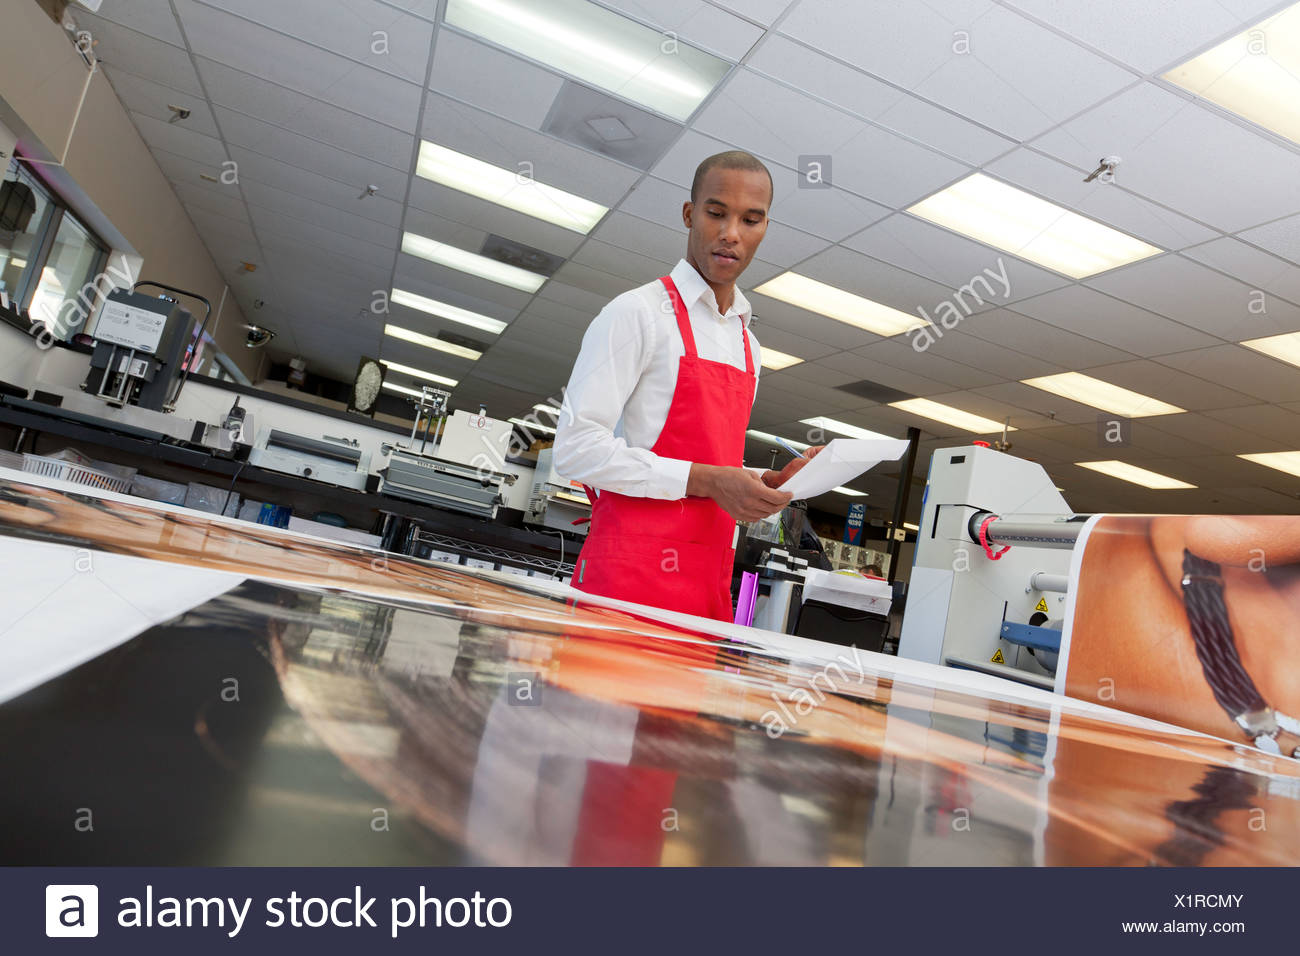 Manual worker looking down at prints - Stock Image